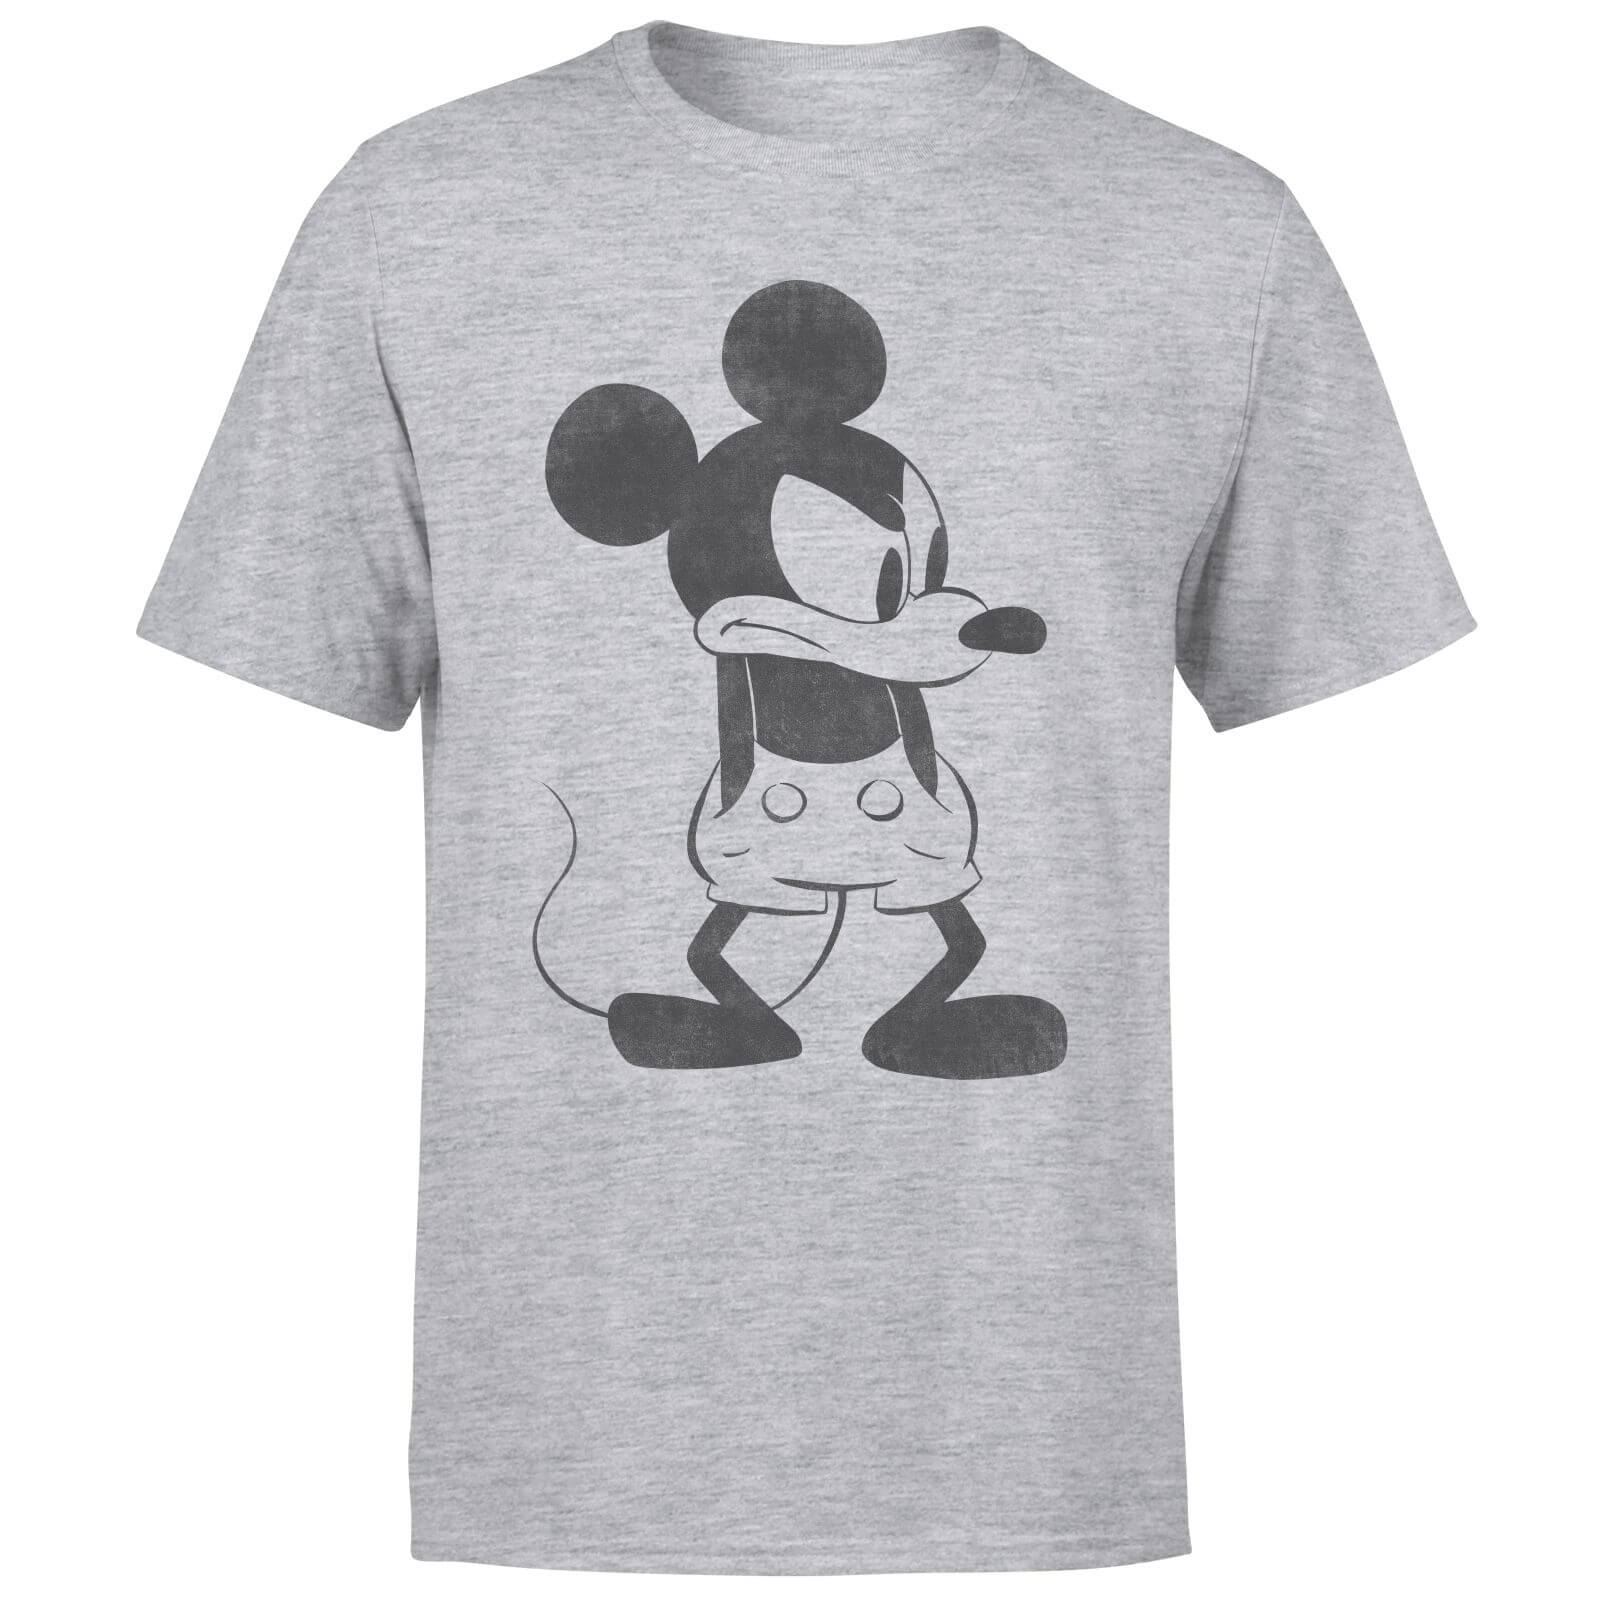 Disney Mickey Mouse Angry T-Shirt - Grey